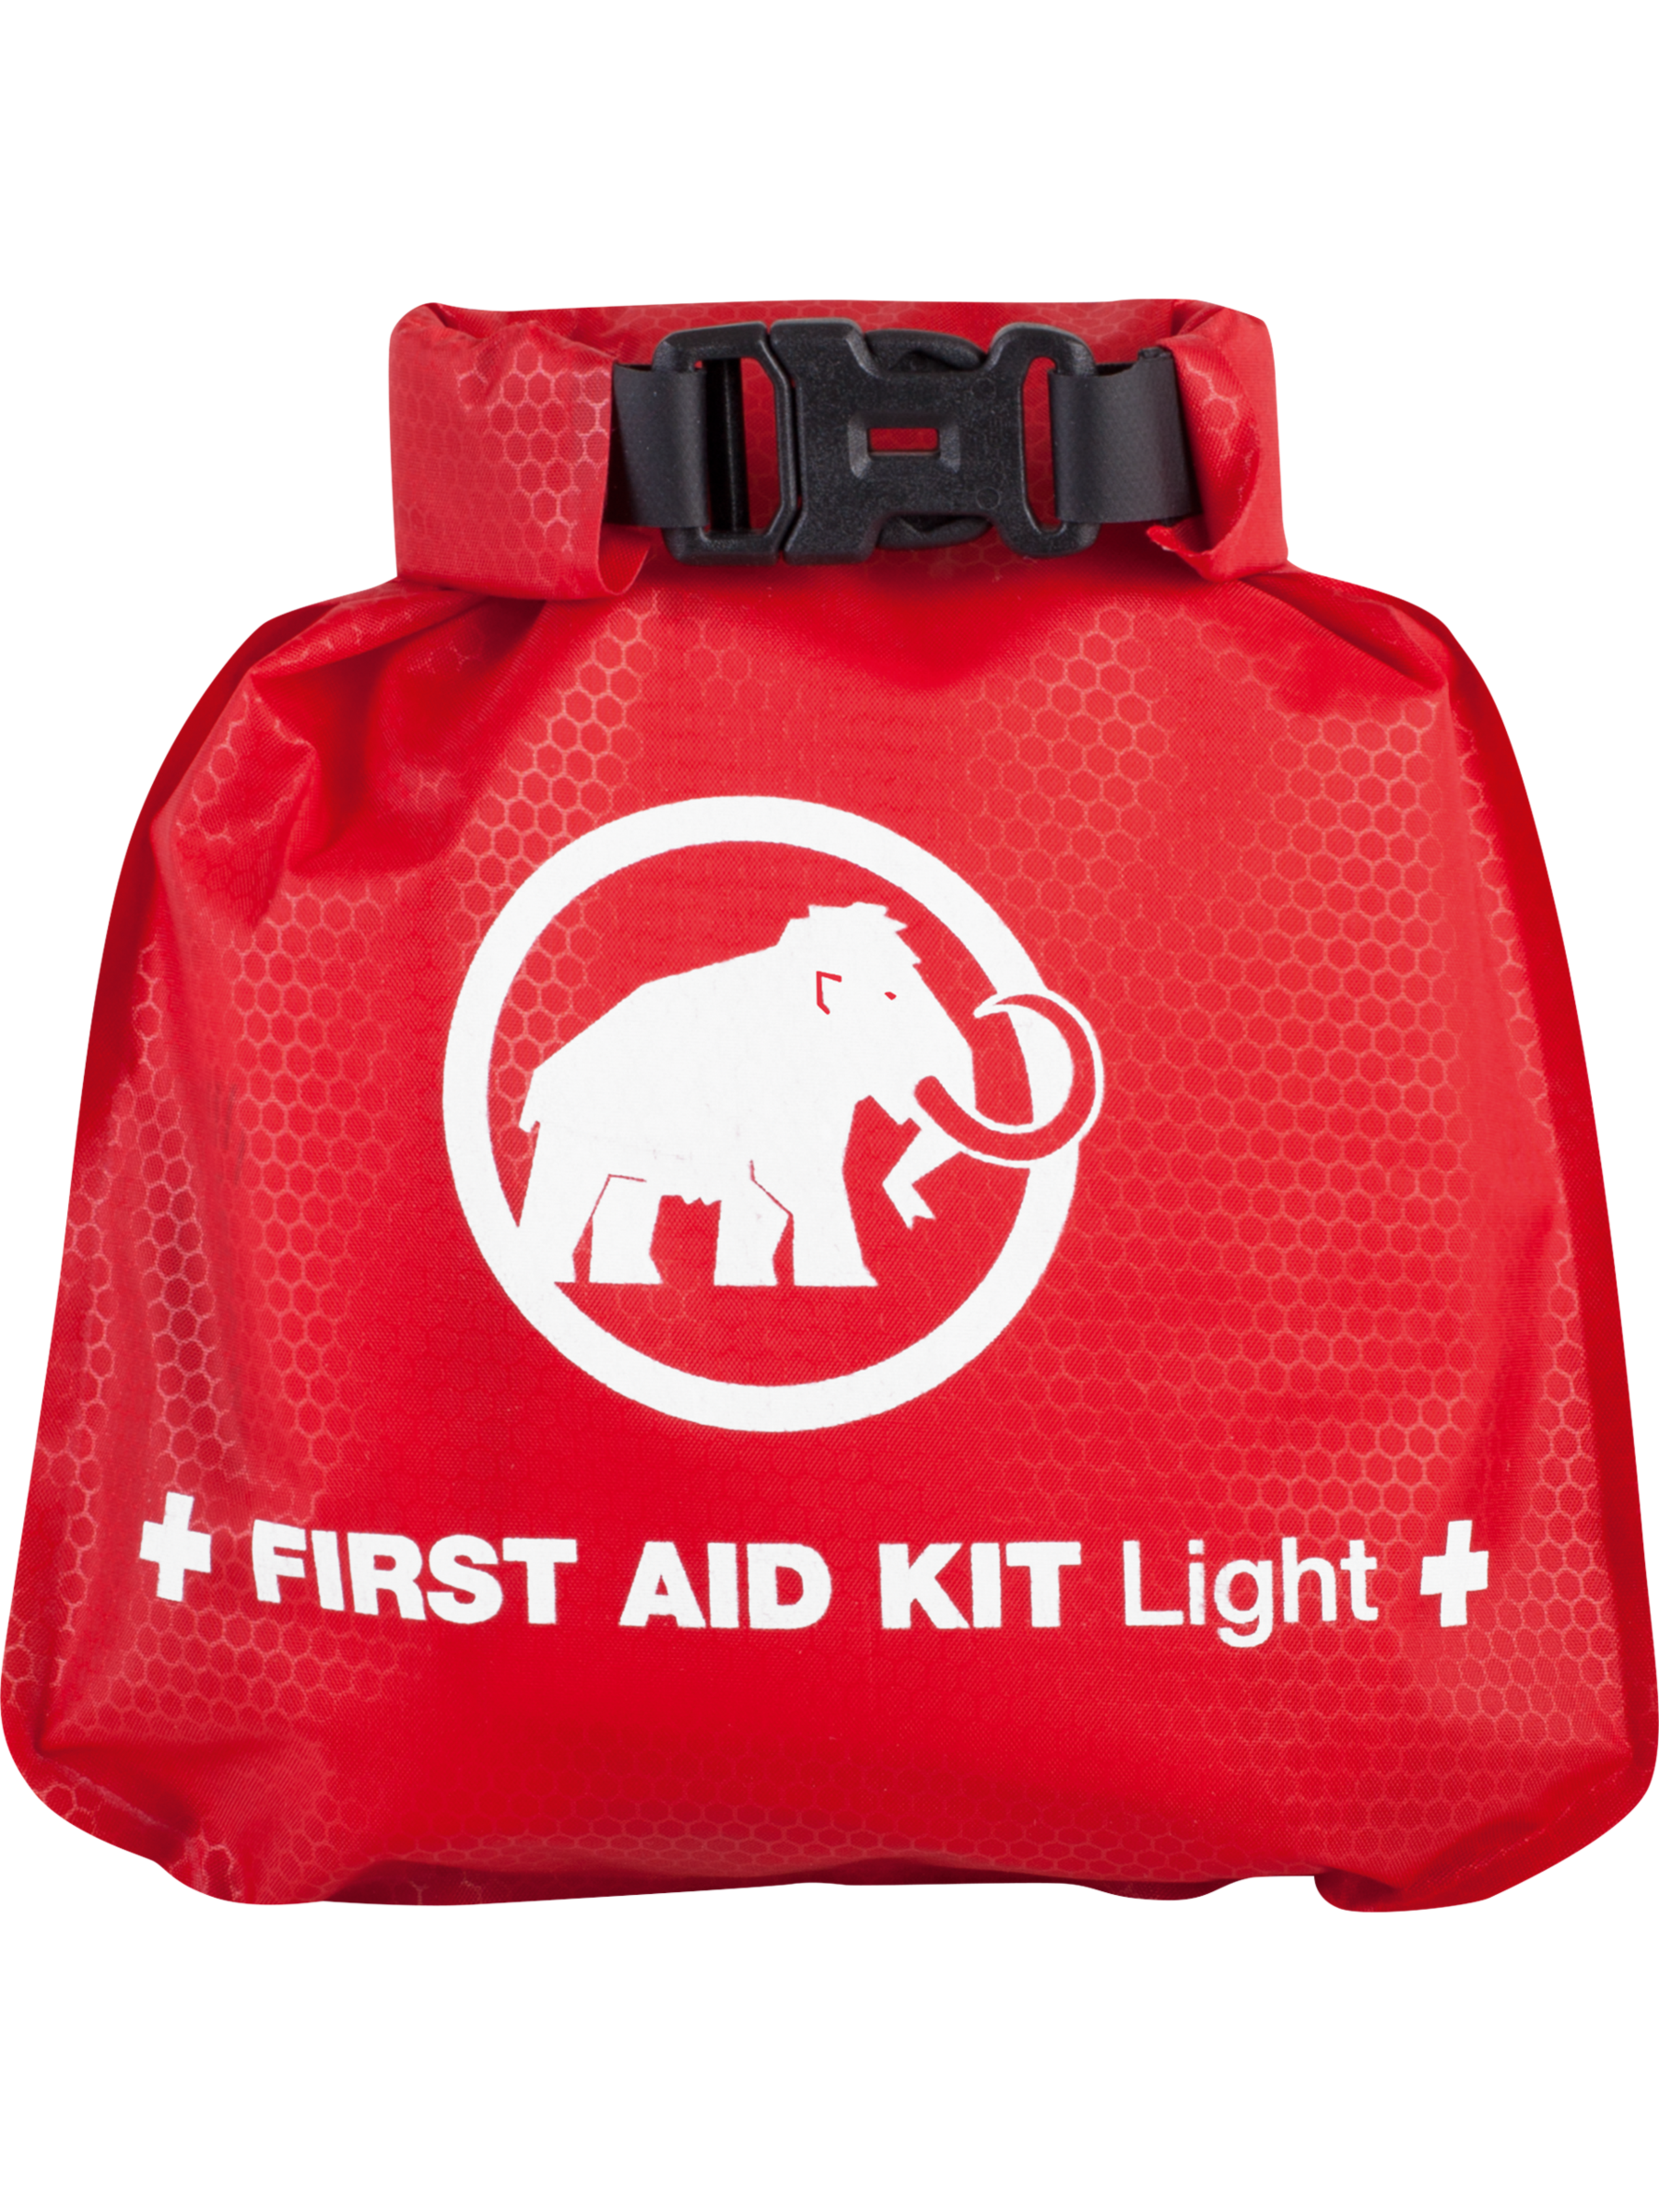 First Aid Kit Light product image